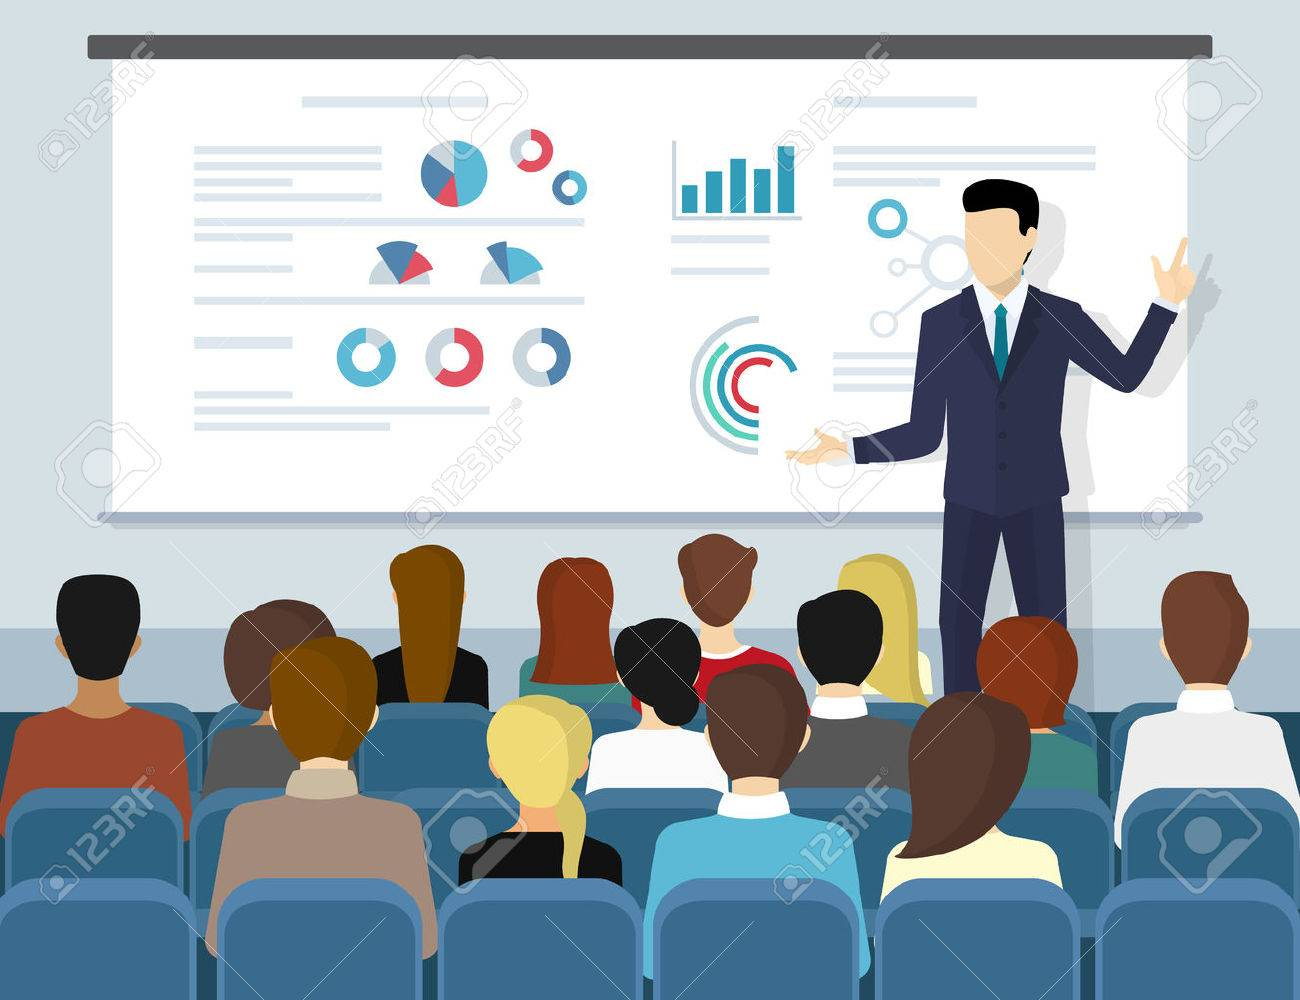 Business seminar speaker doing presentation and professional training about marketing, sales and e-commerce. Flat illustration of public conference and motivation for business audience - 60480441